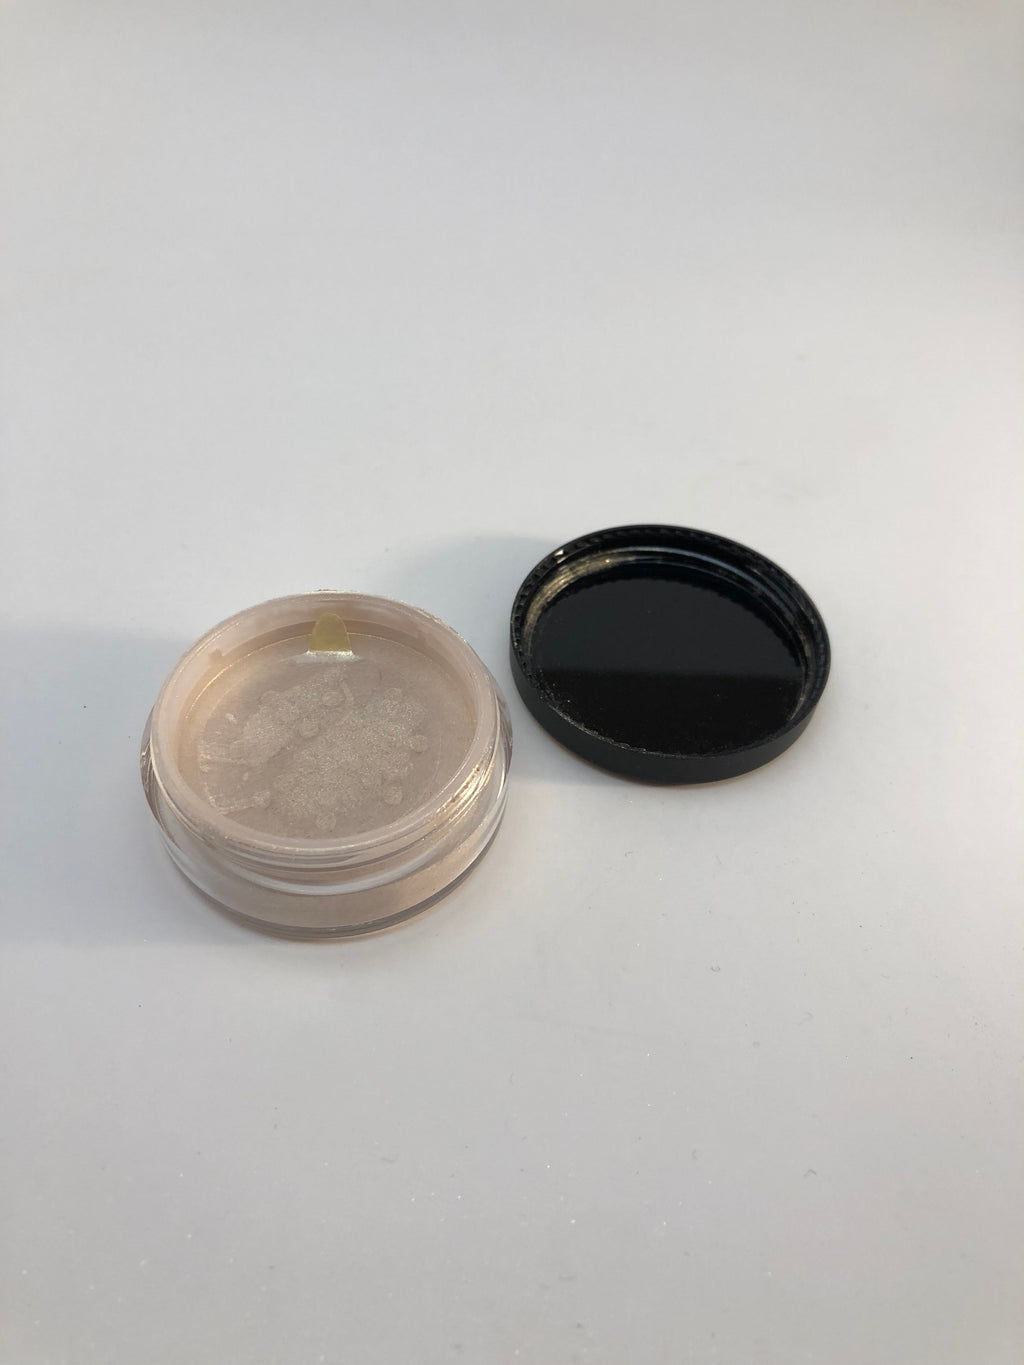 Celestial Beam Highlighter Powder